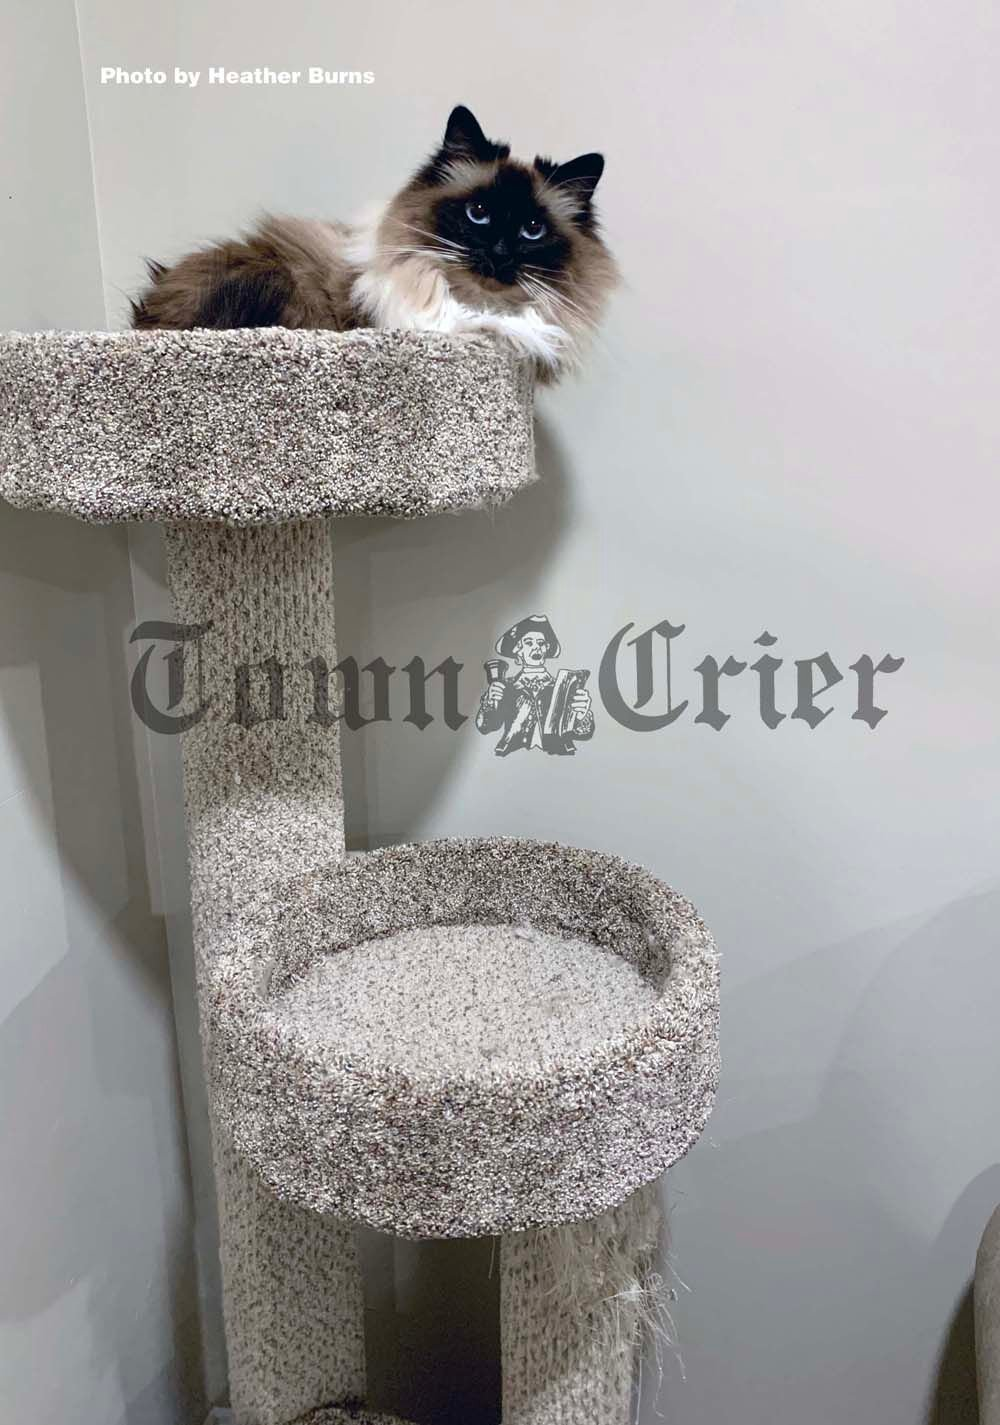 Add a cat tree or perch to help reduce stress and anxiety for cats